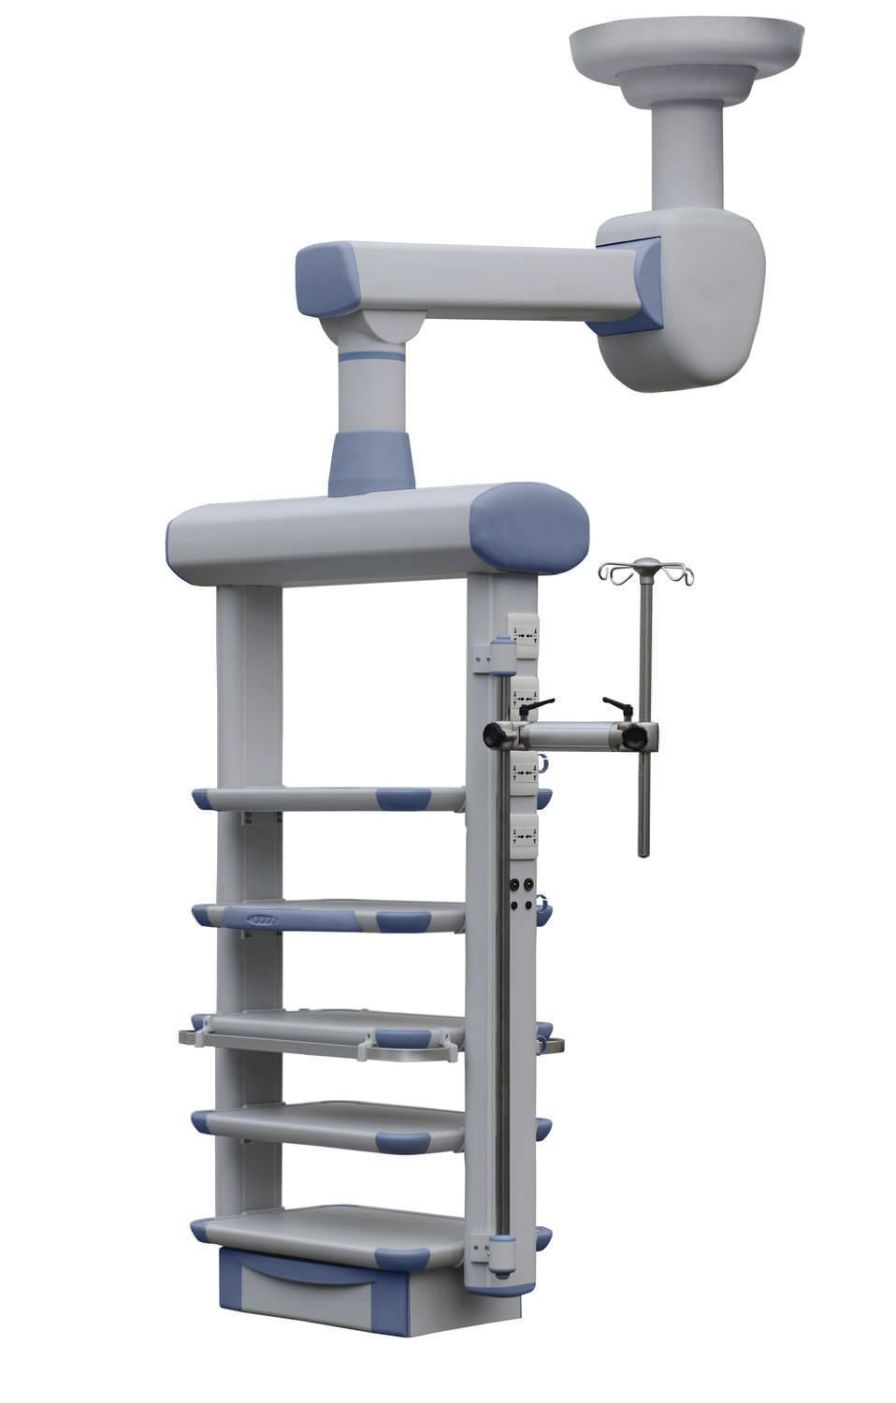 Ceiling-mounted medical pendant / motorized / articulated / single-arm YDT-QJ-2 Hunan taiyanglong medical